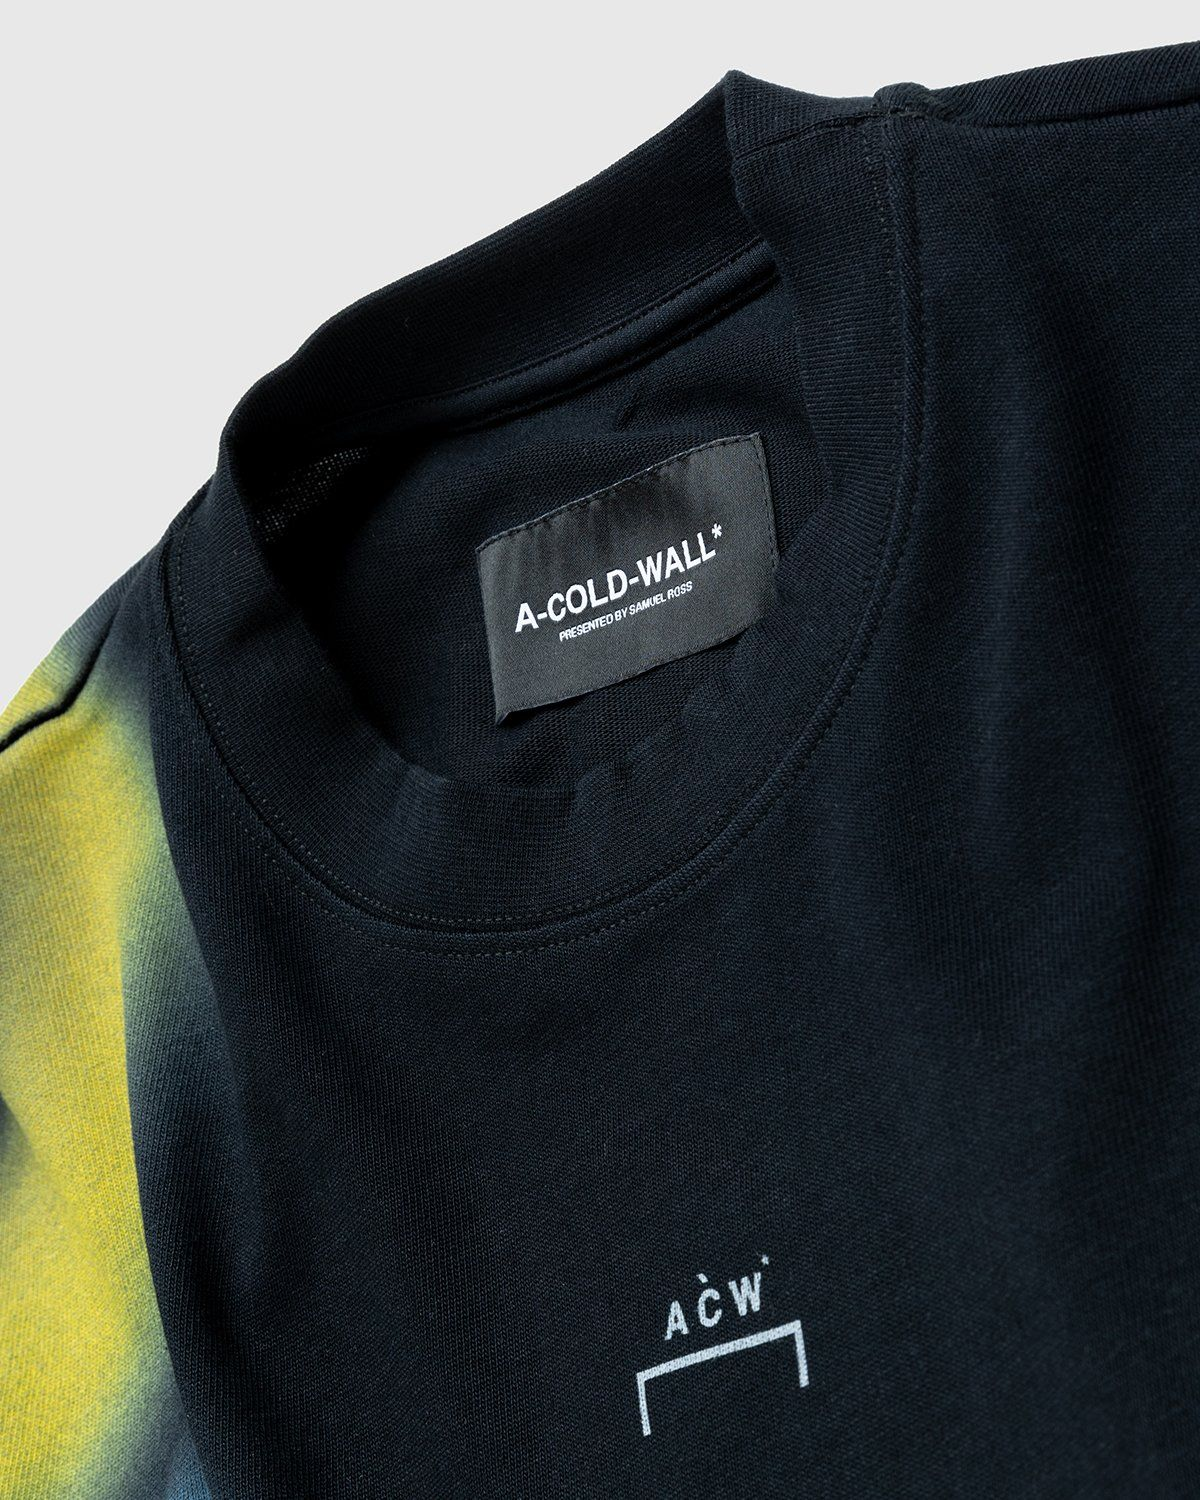 A-COLD-WALL* – Hypergraphic Longsleevee Black - Image 5